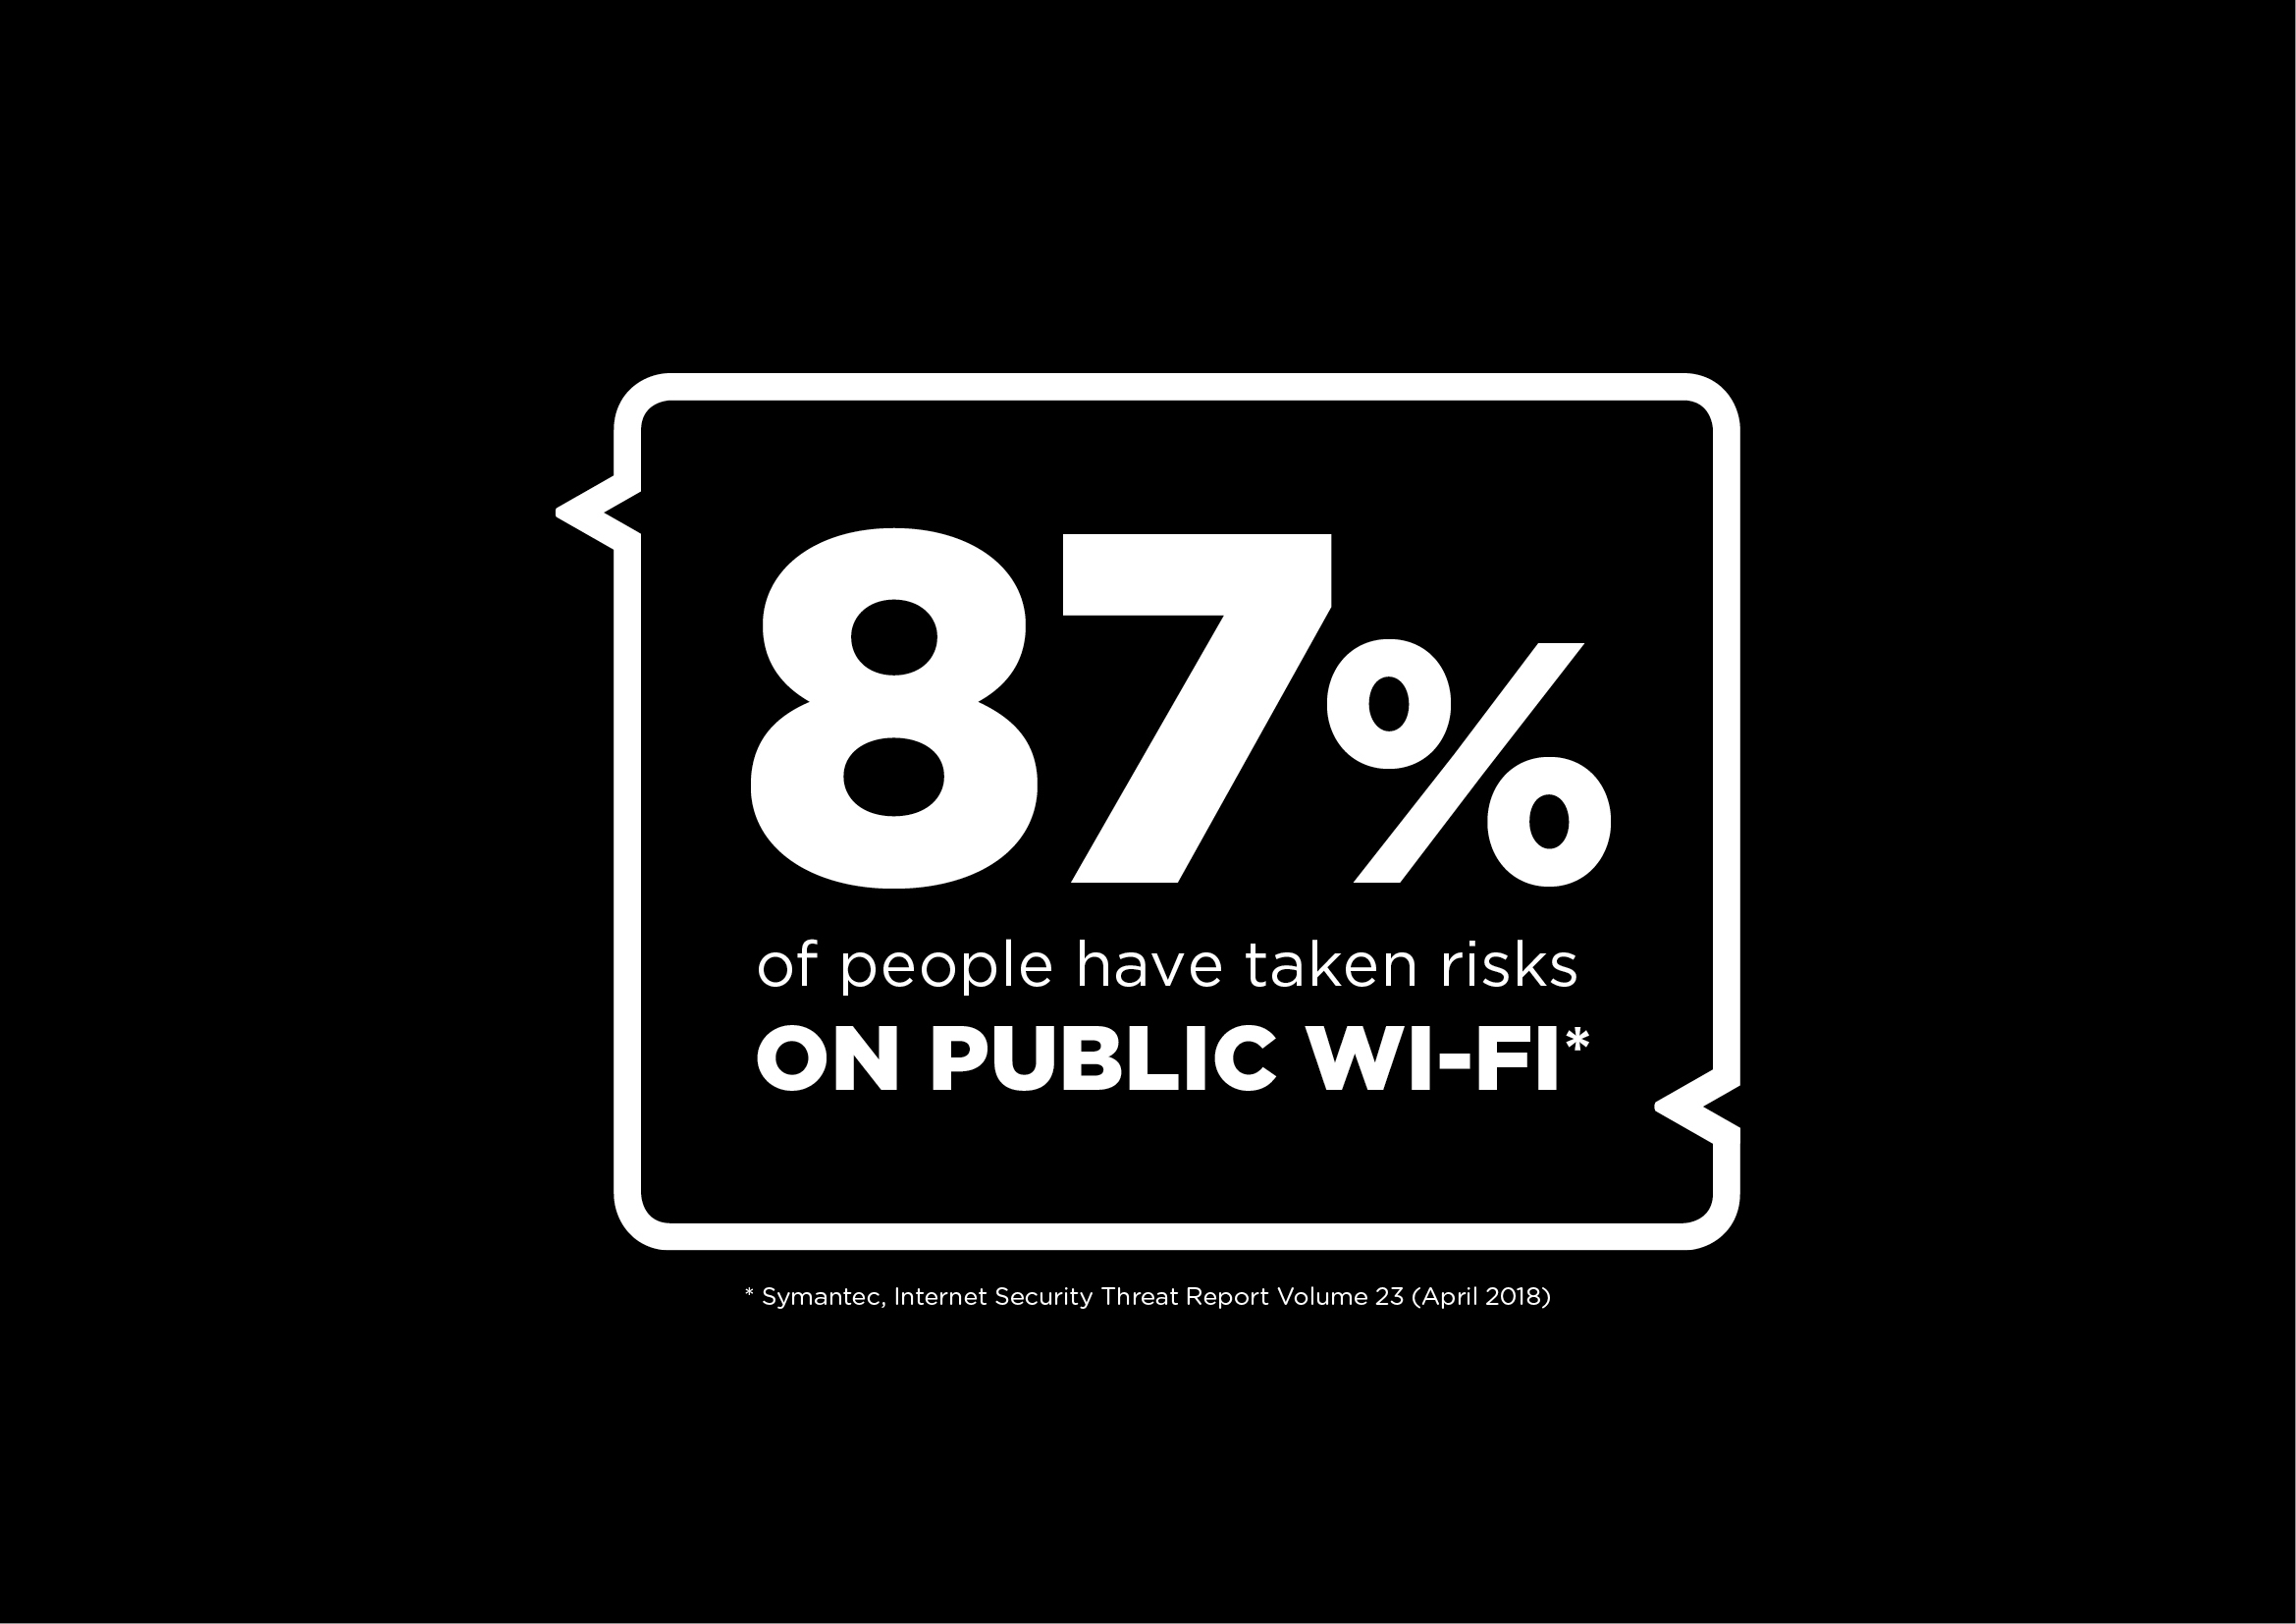 87% of poeple have taken risks on public wifi